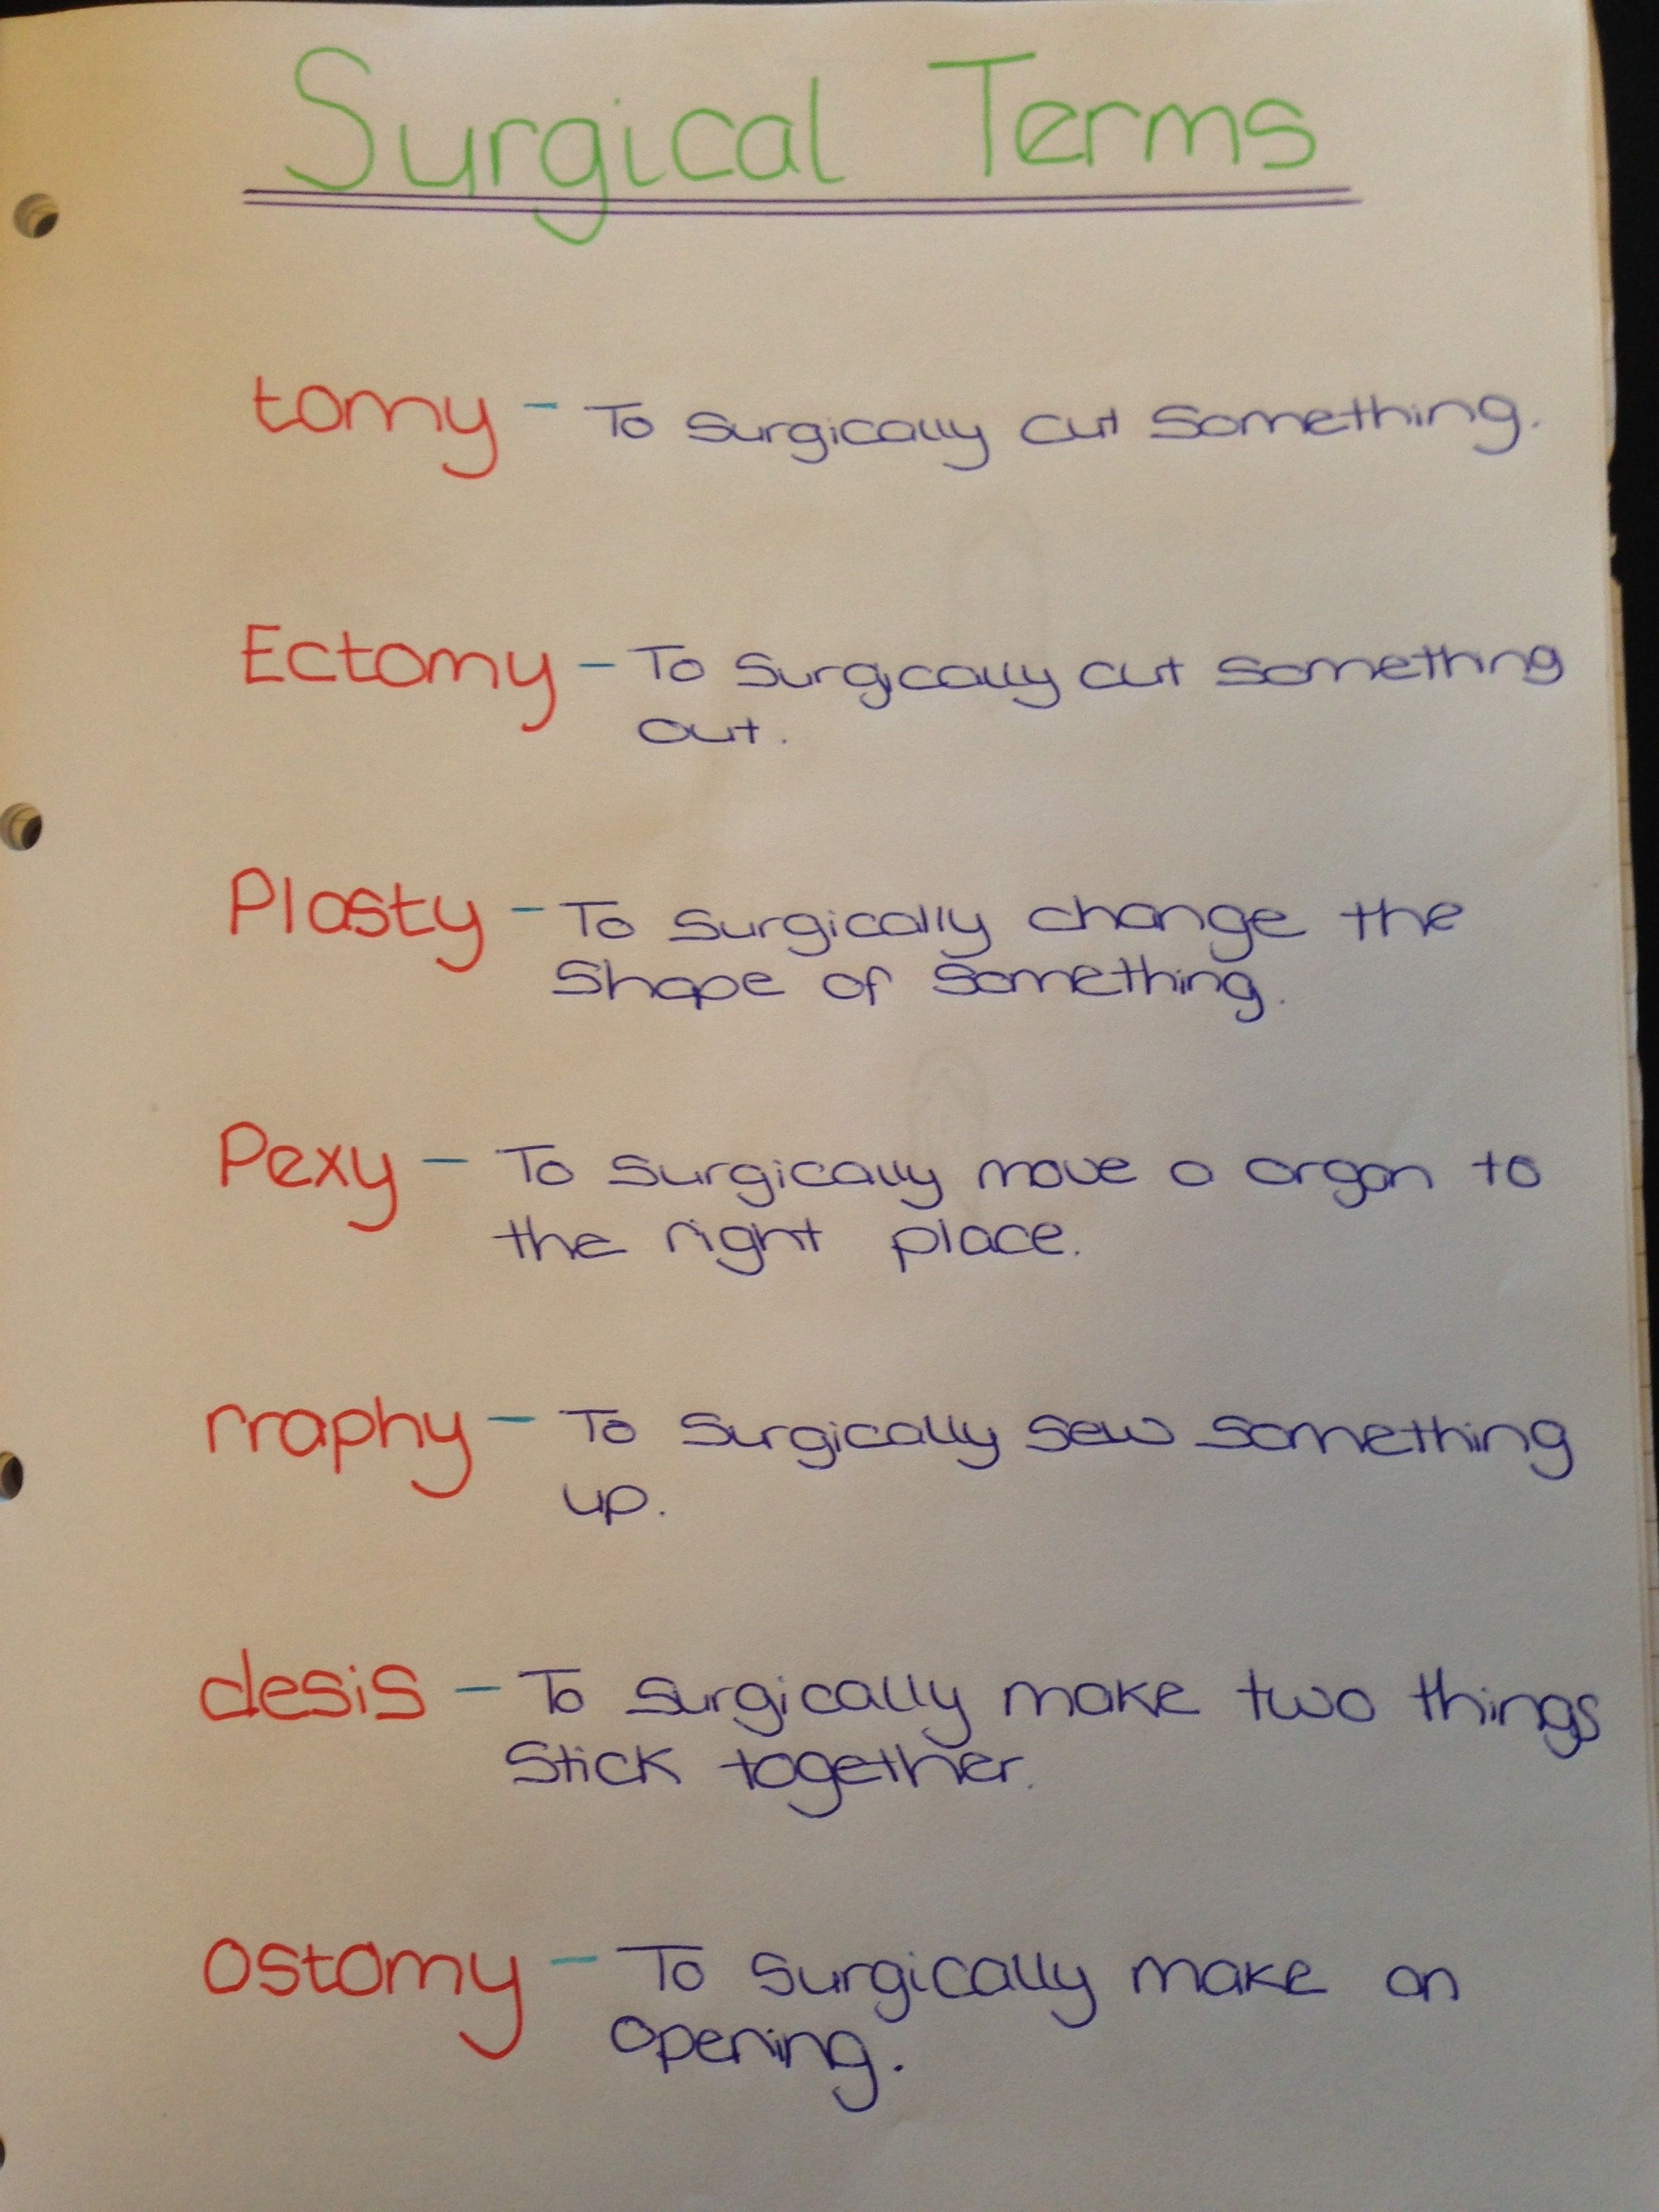 Surgical Suffixes